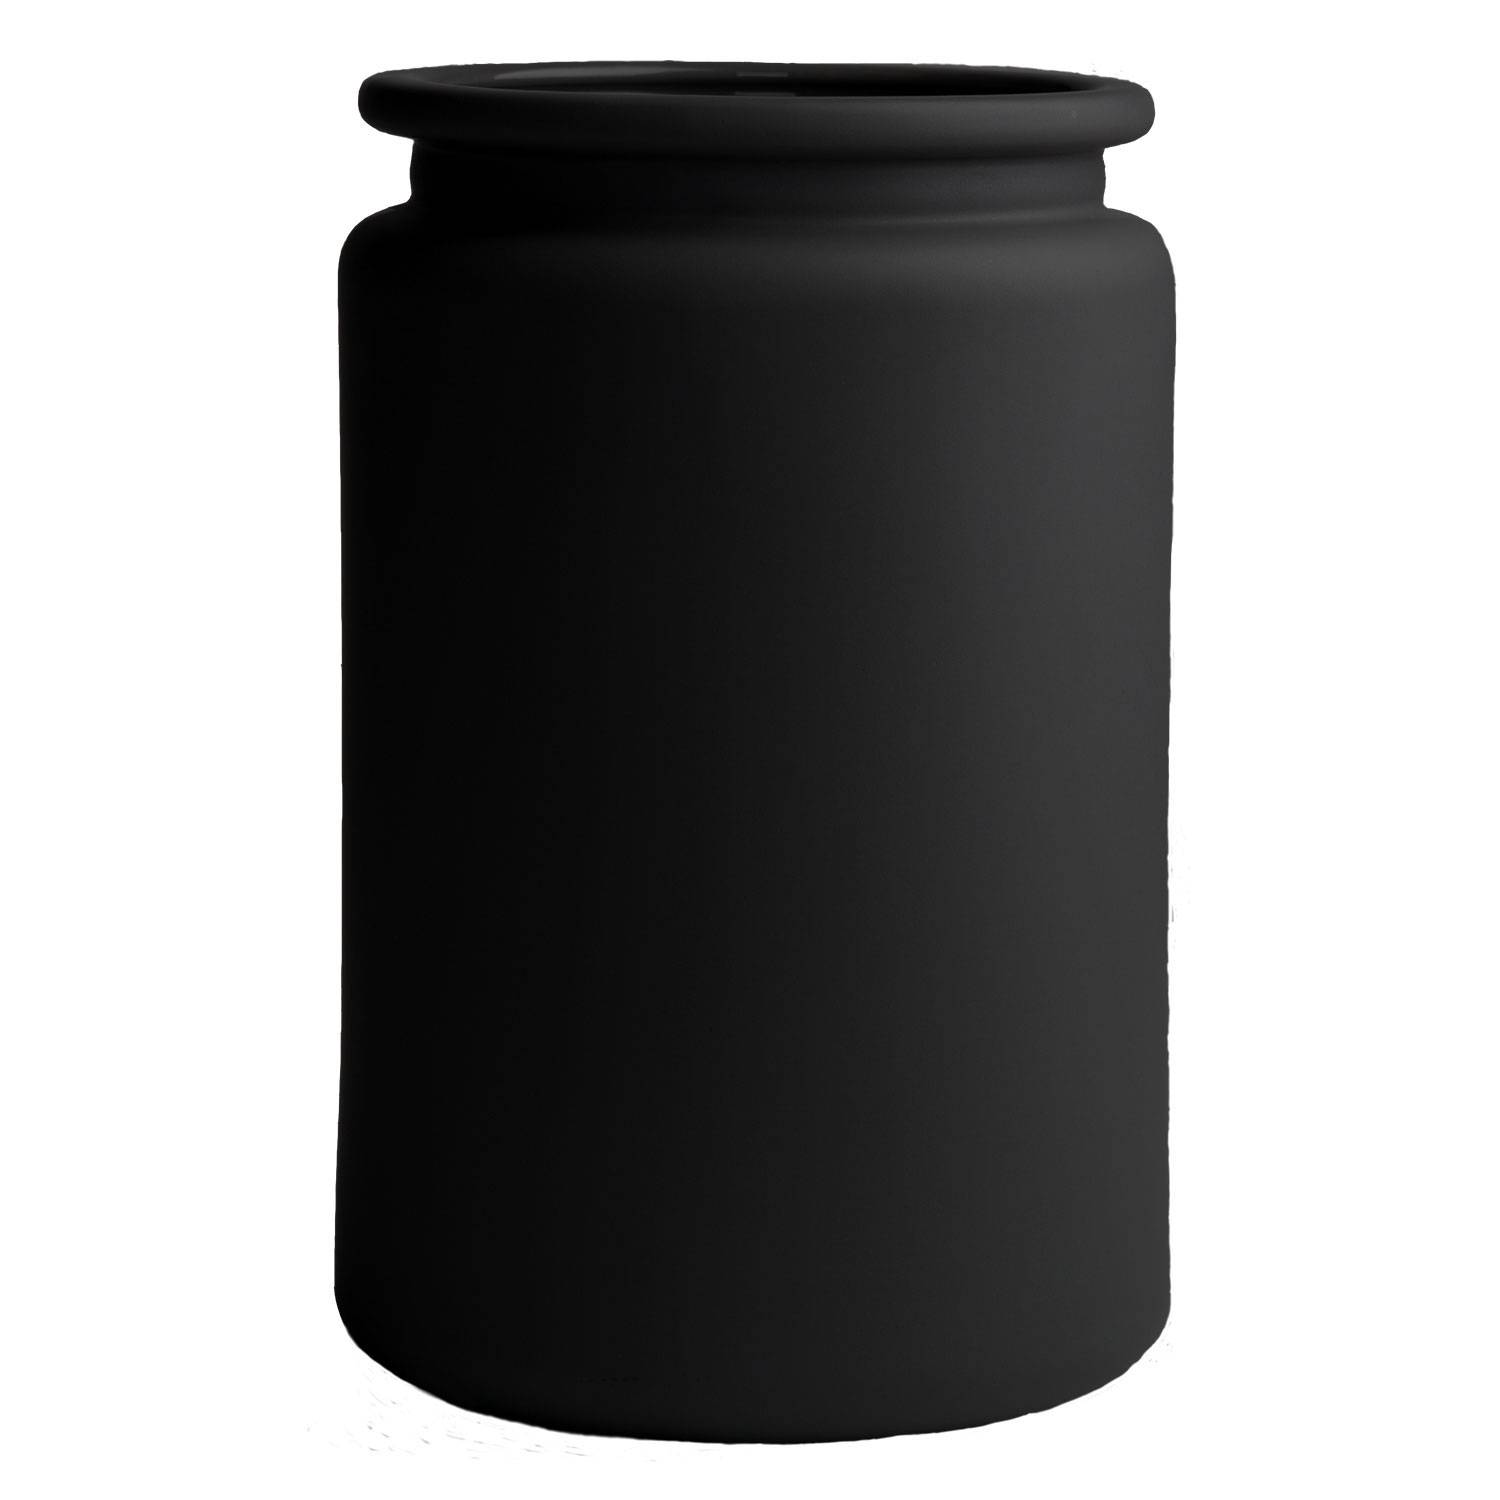 DBKD Pure Pot Large